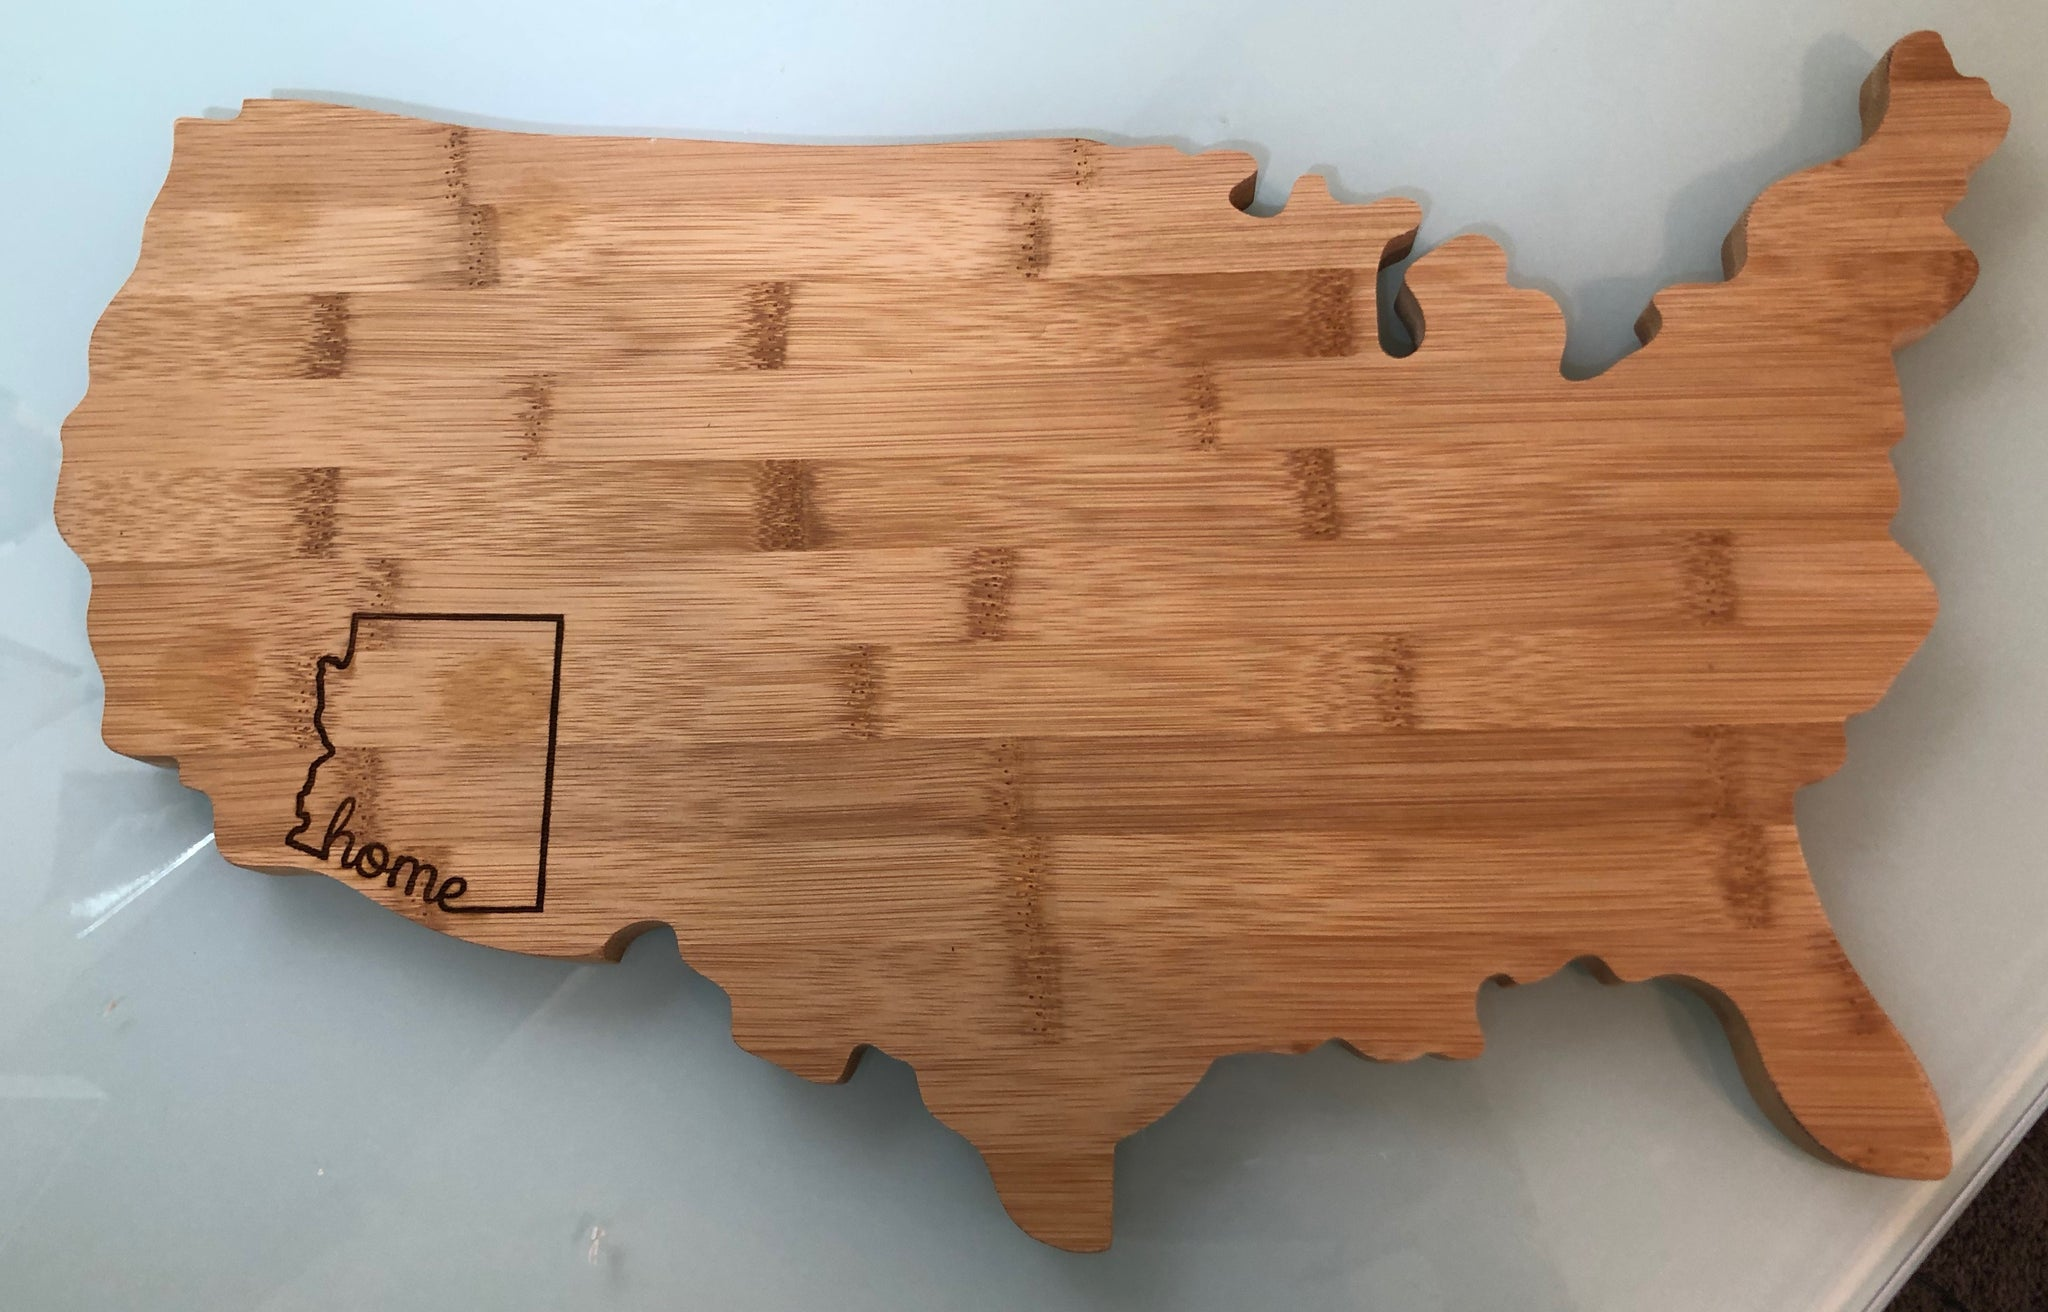 United States Cutting Board with your state outlined 🇺🇸